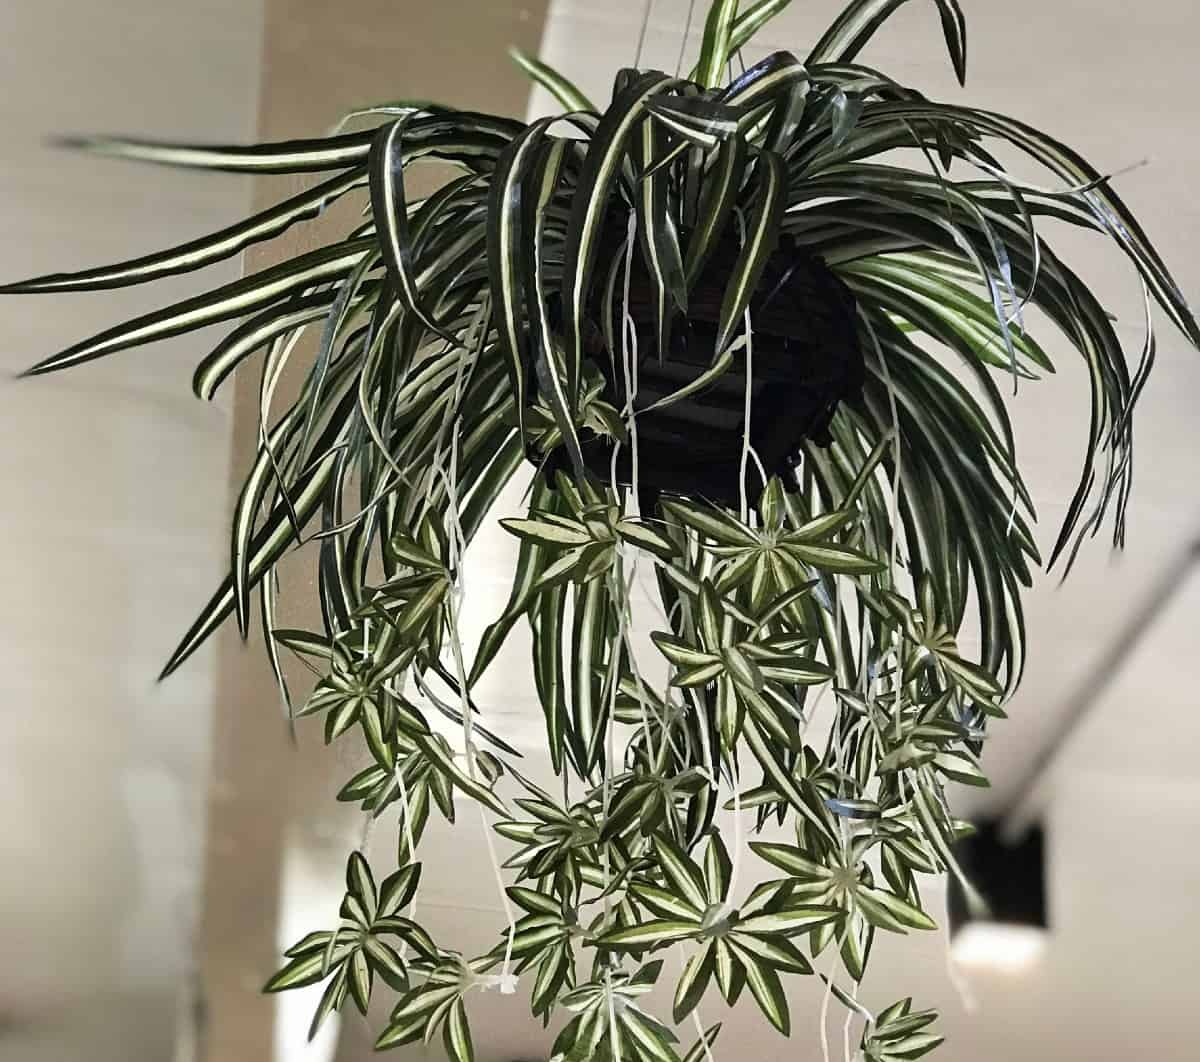 Spider plants are perfect for hanging baskets anywhere in the home.